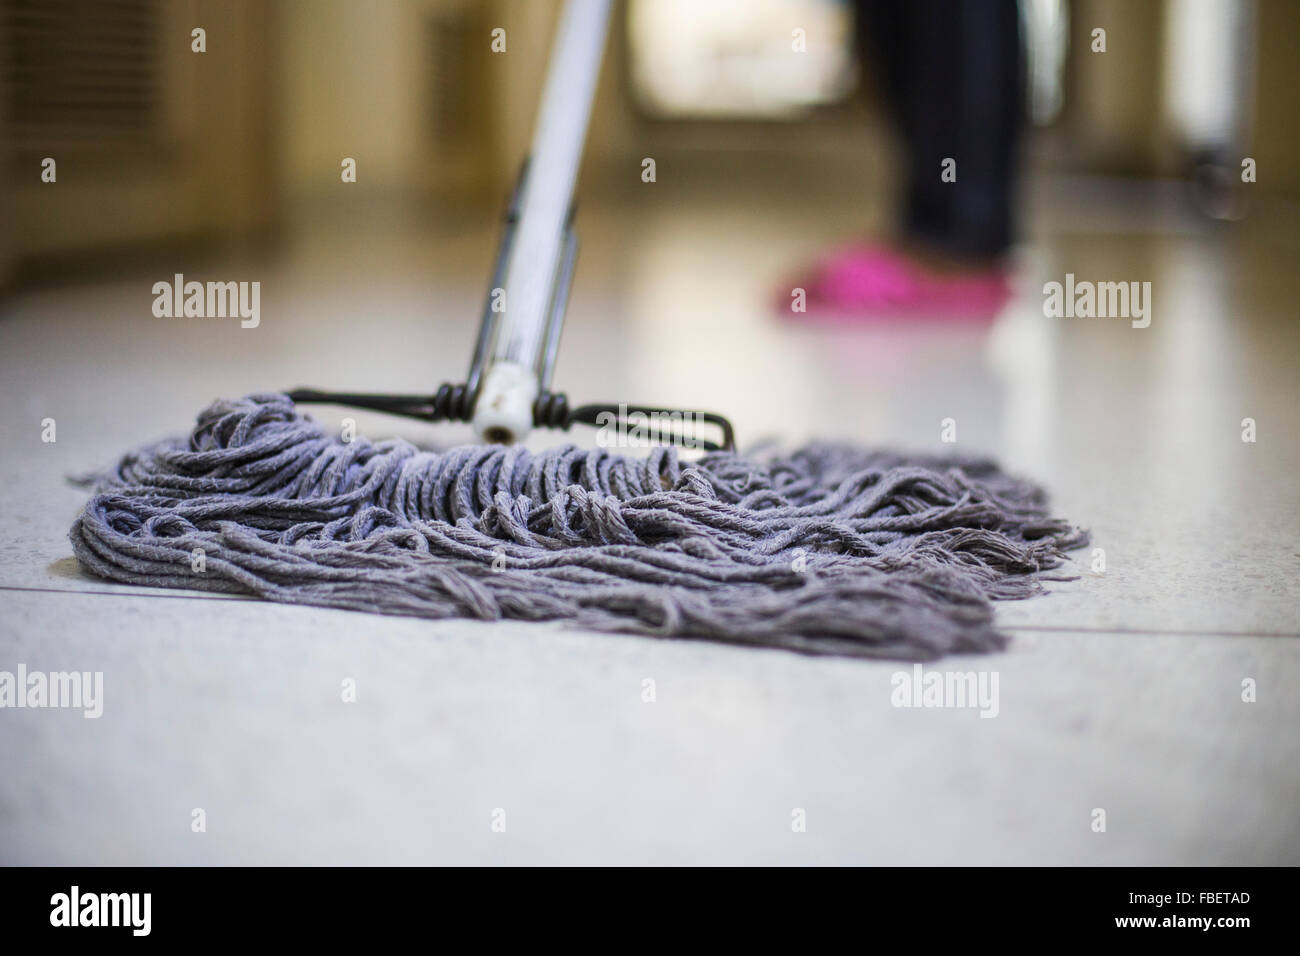 Low Section Of Person Cleaning Floor With Mop - Stock Image